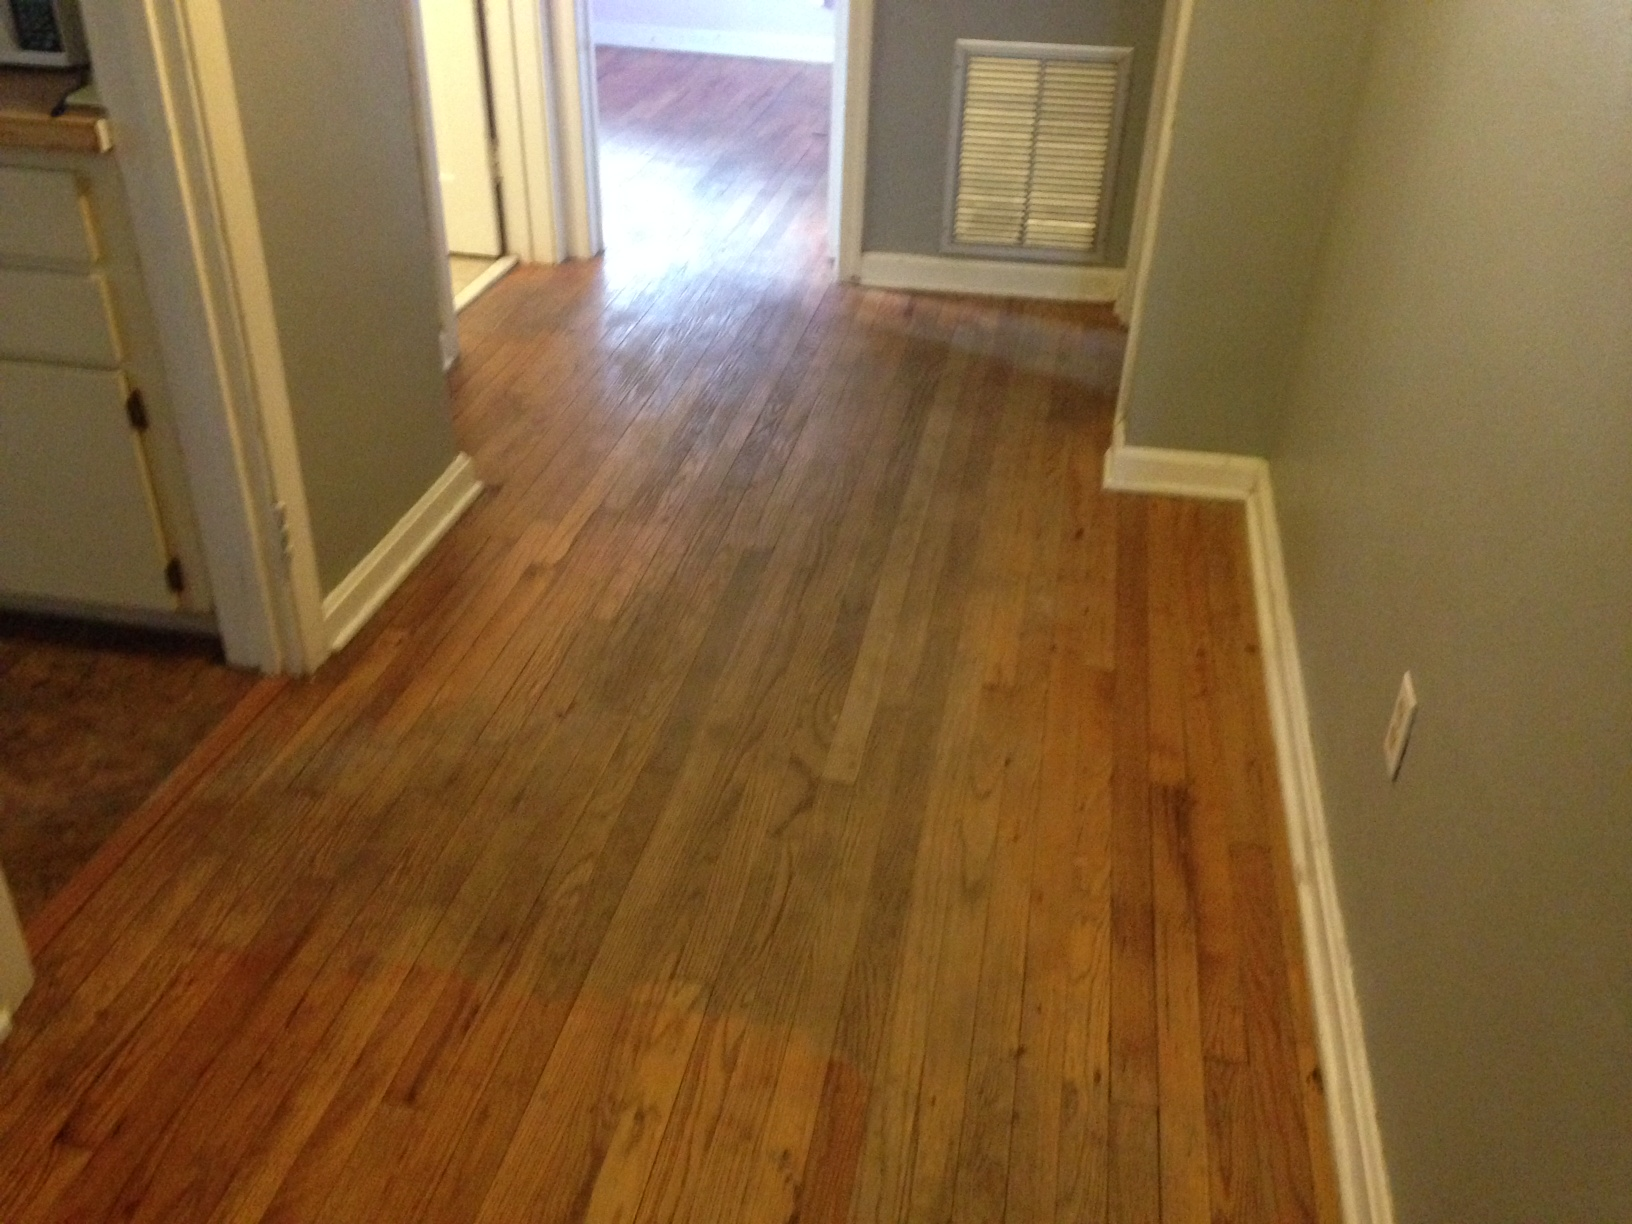 Wood floor refinishing project san marco jacksonville fl for Wood floor refinishing